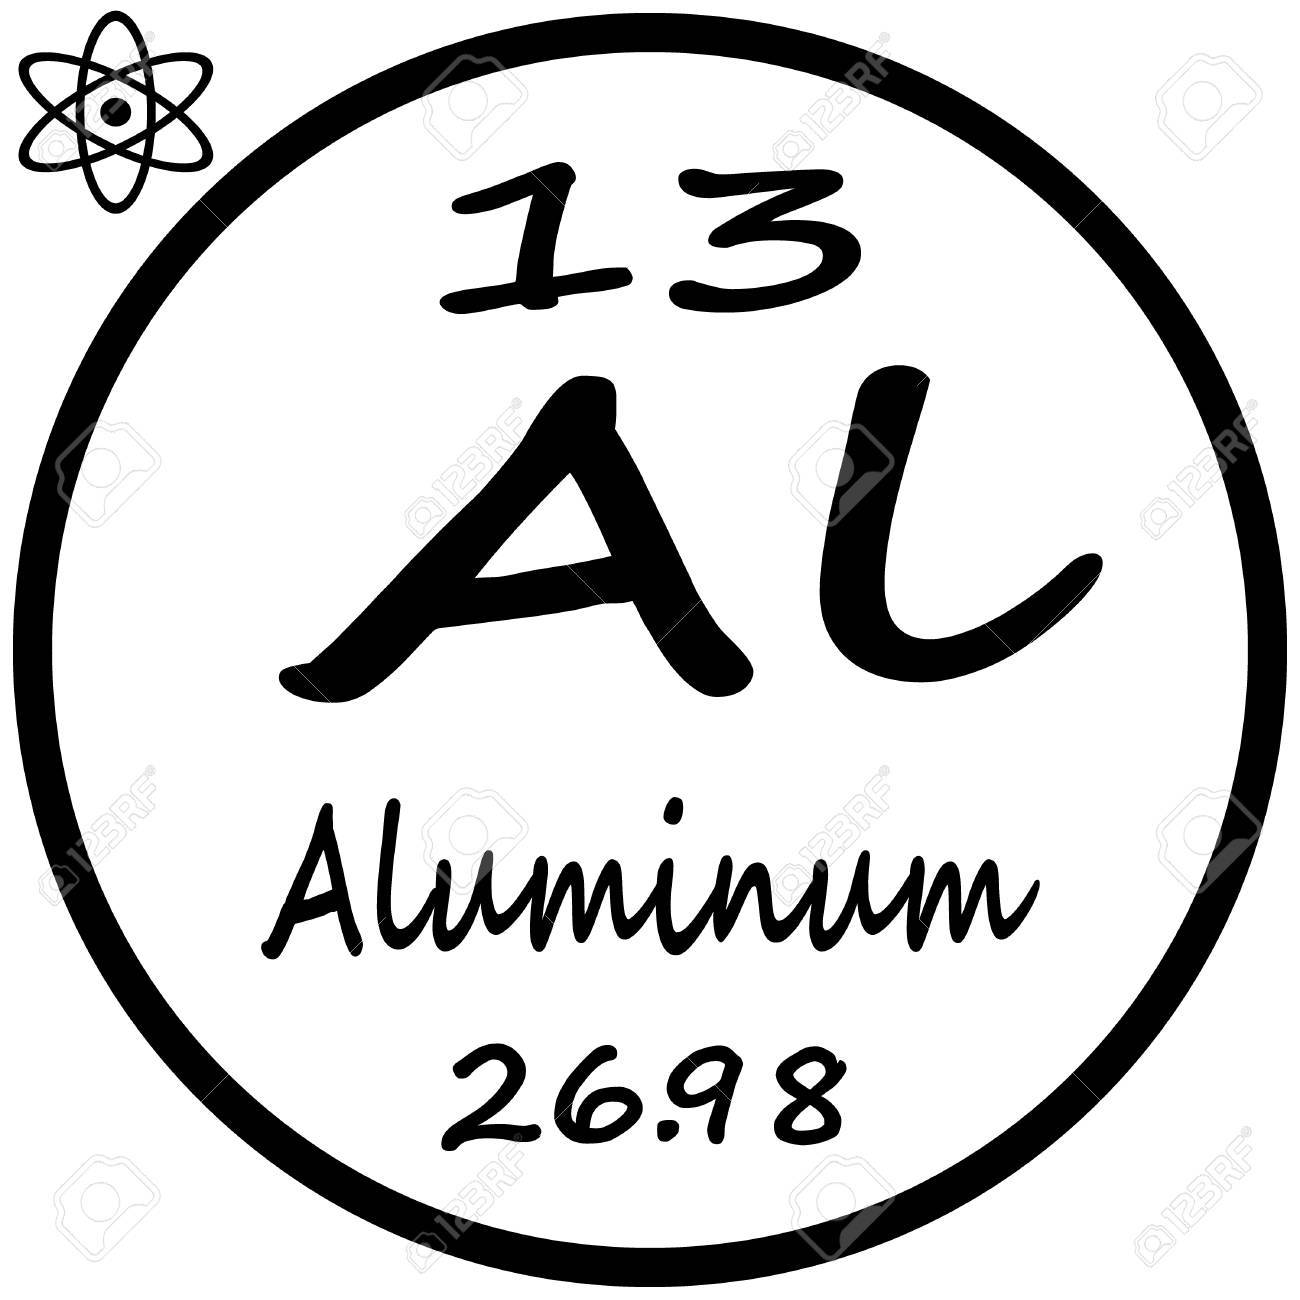 Periodic table of elements aluminum royalty free cliparts vectors periodic table of elements aluminum stock vector 53482434 urtaz Gallery